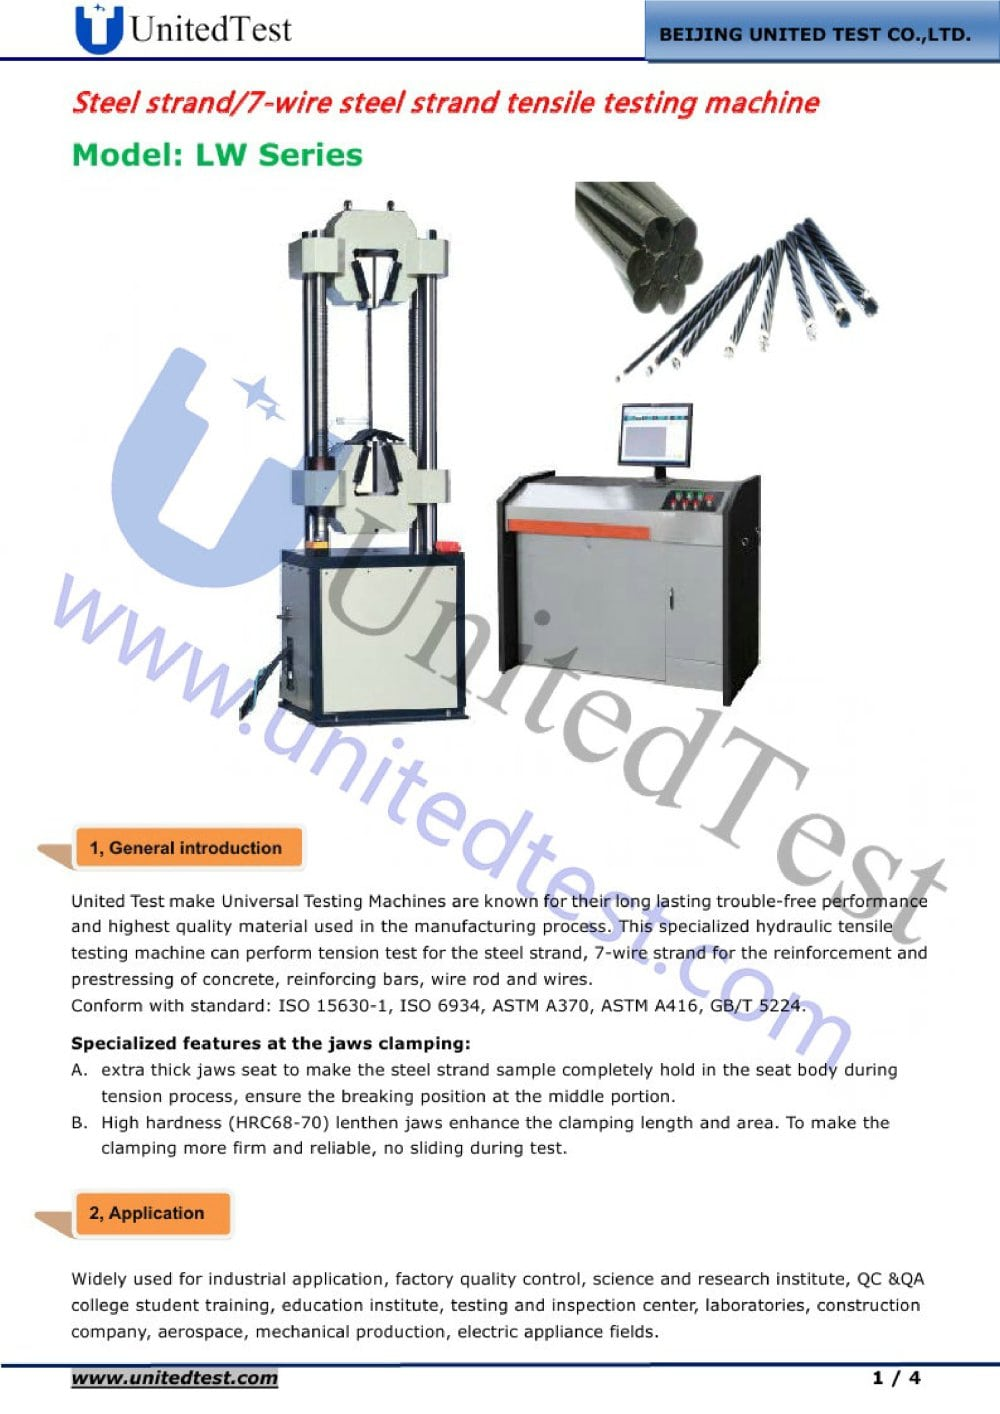 STEEL STRAND/7-WIRE STEEL STRAND TENSILE TESTING MACHINE - 1 / 4 Pages